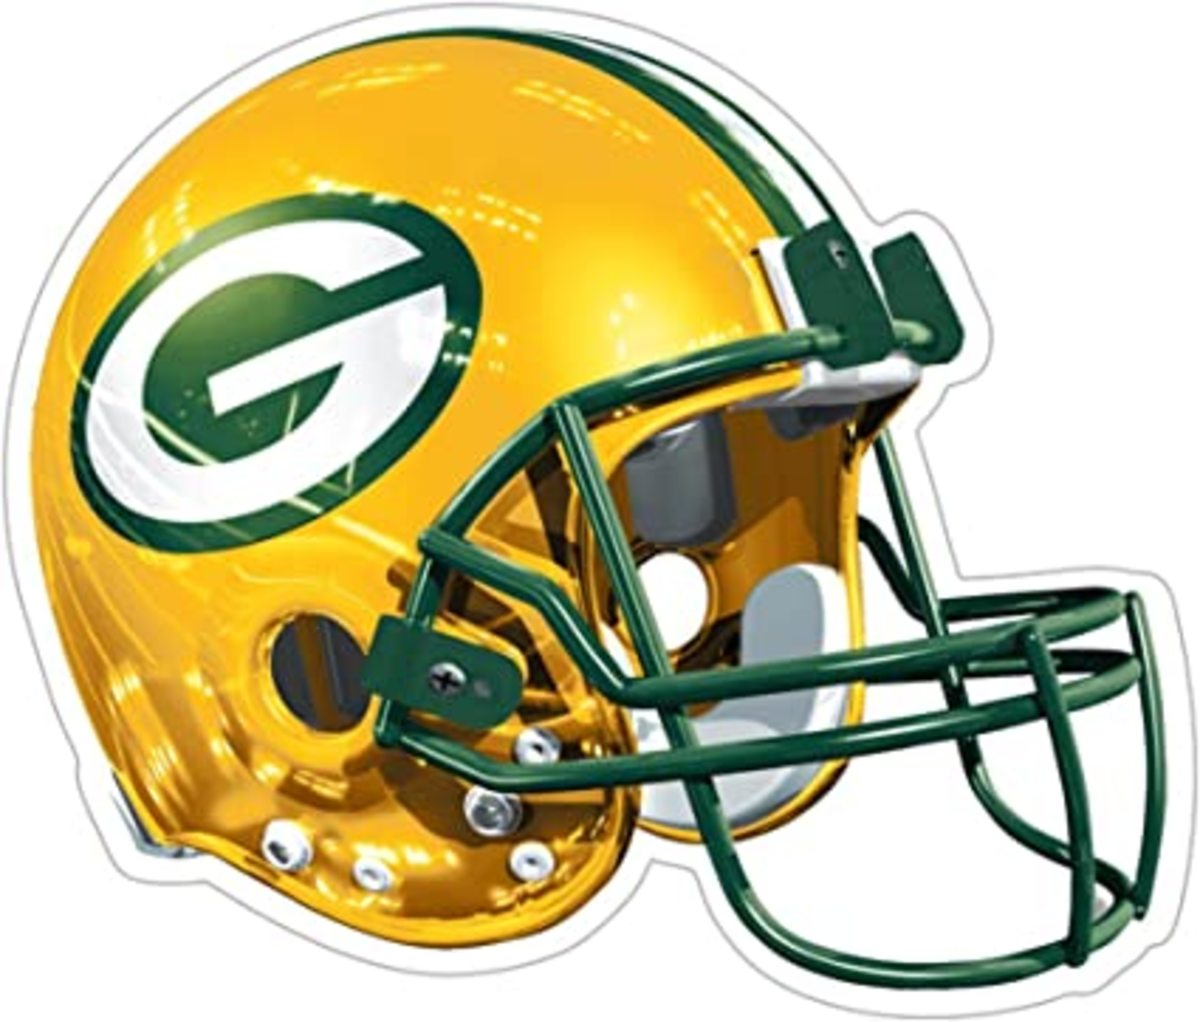 In 1964, the Green Bay Packers were the NFL champs.